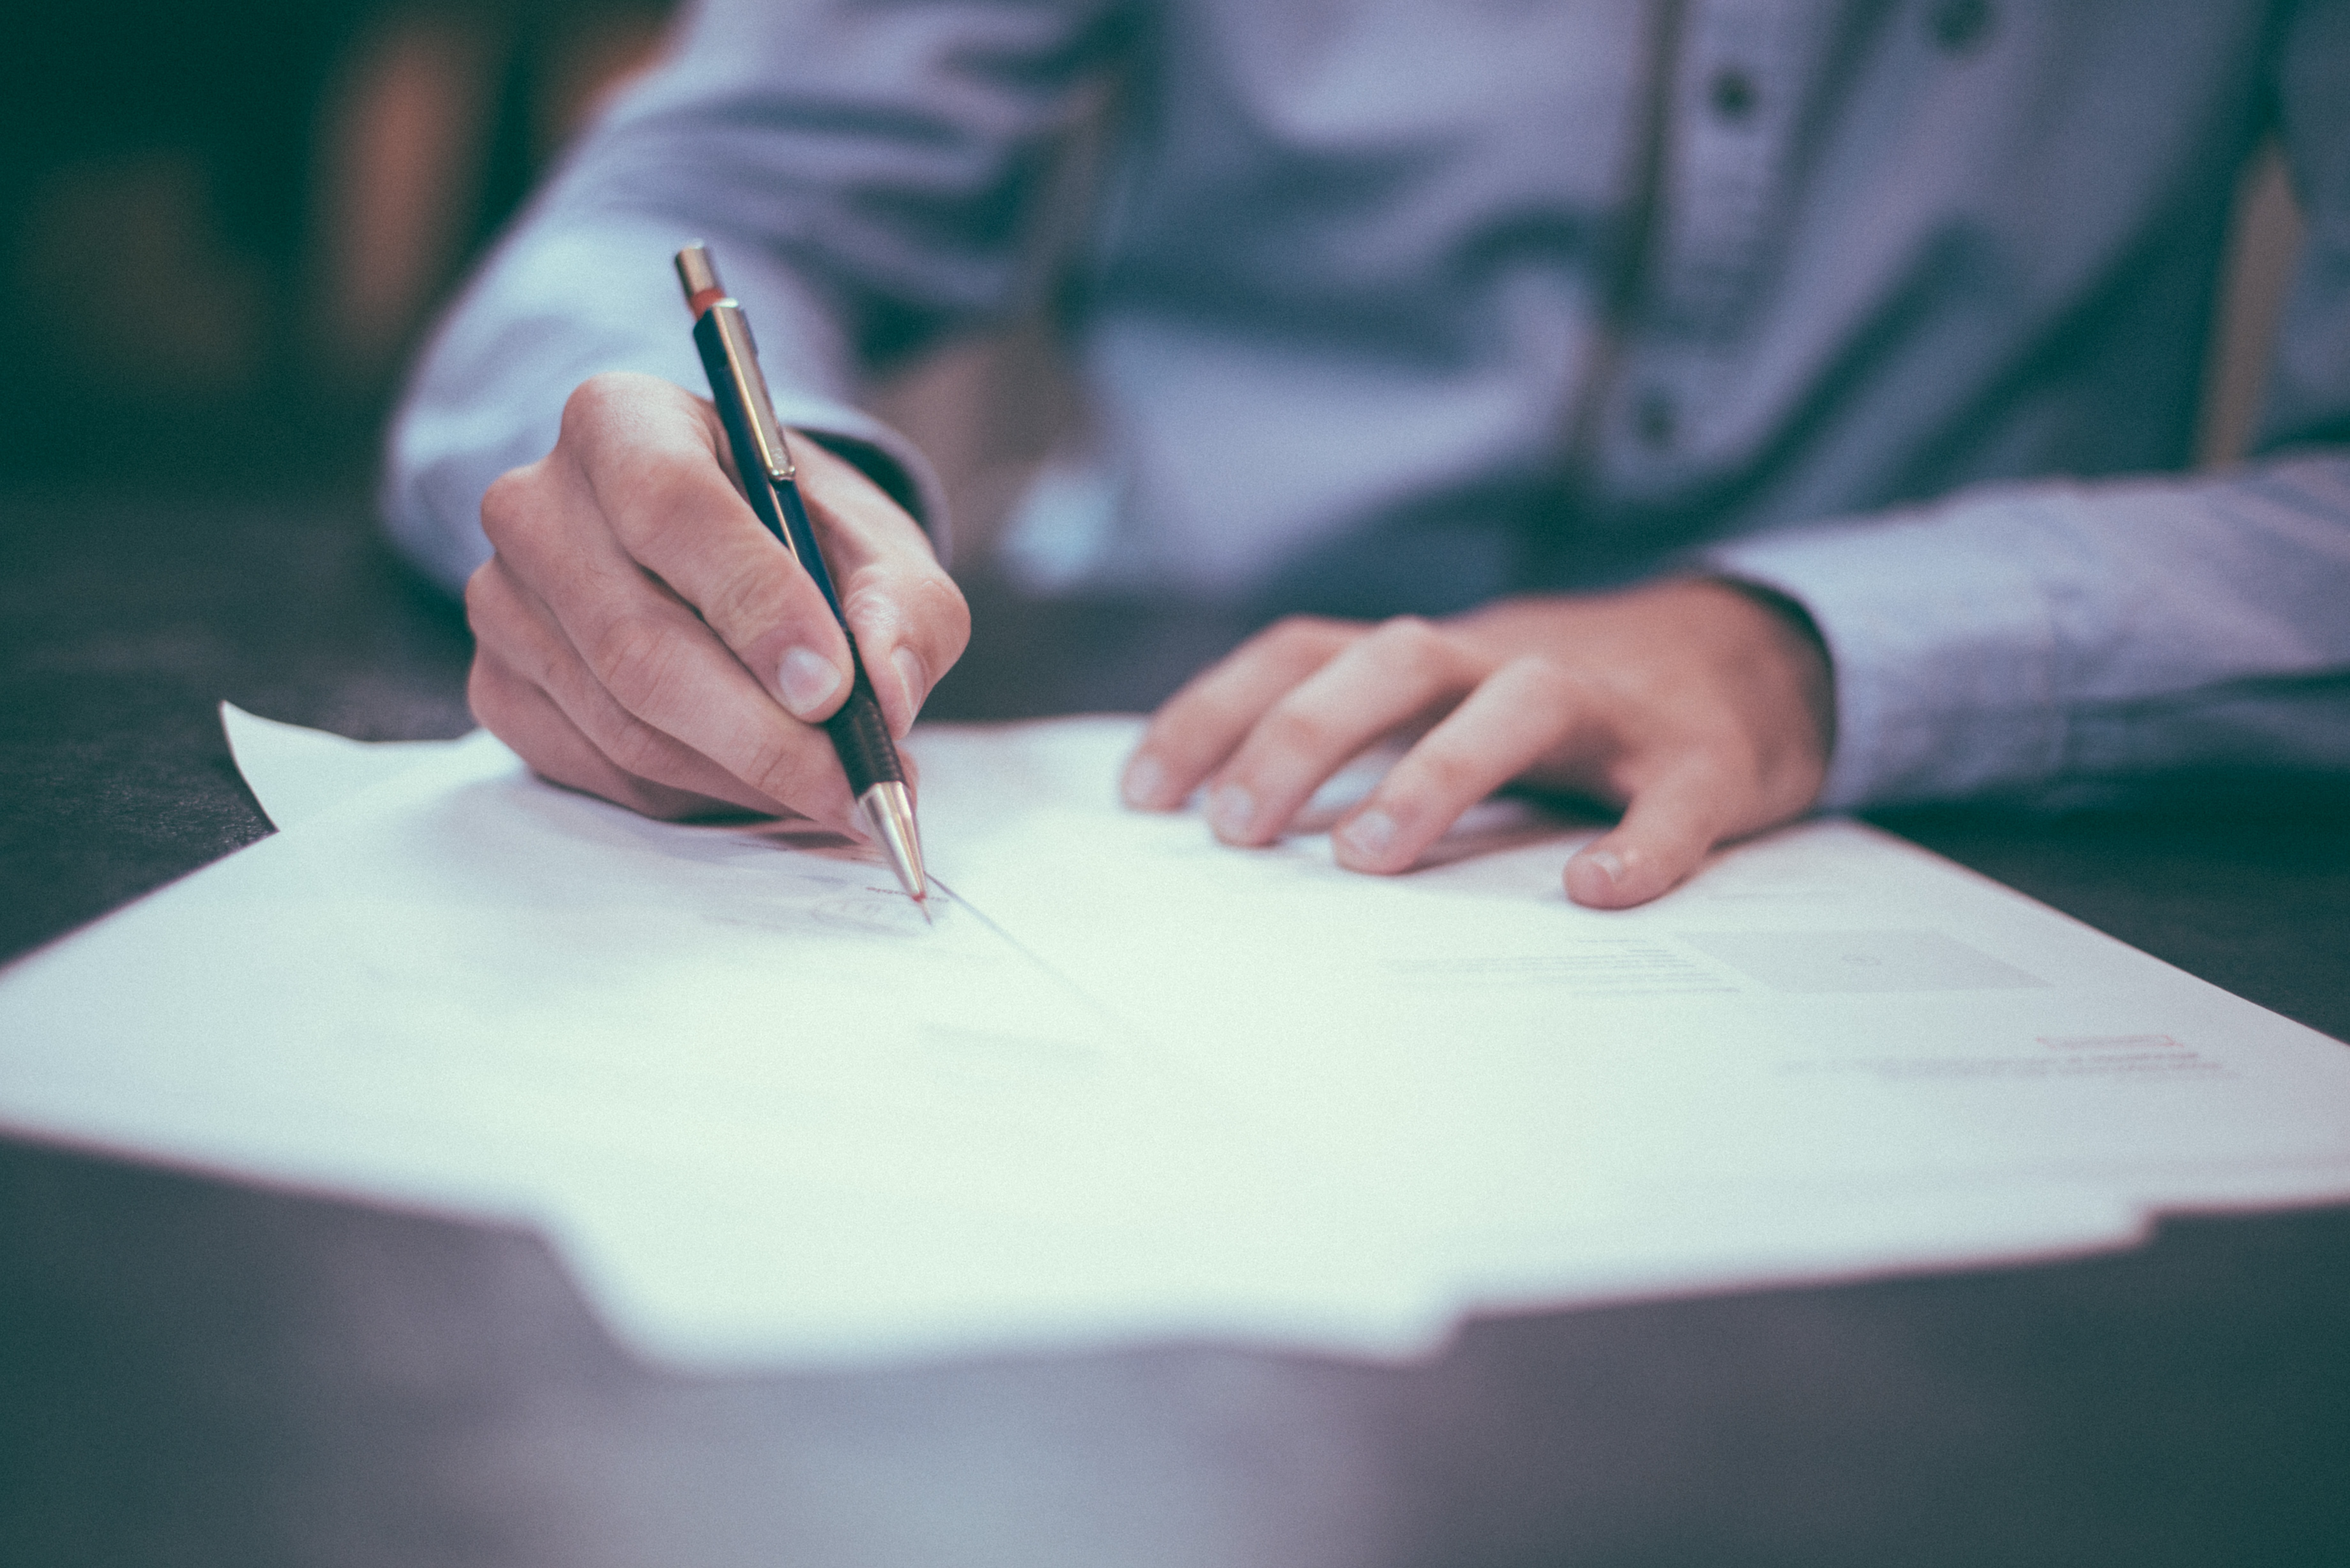 Man in shirt writing on papers with pen